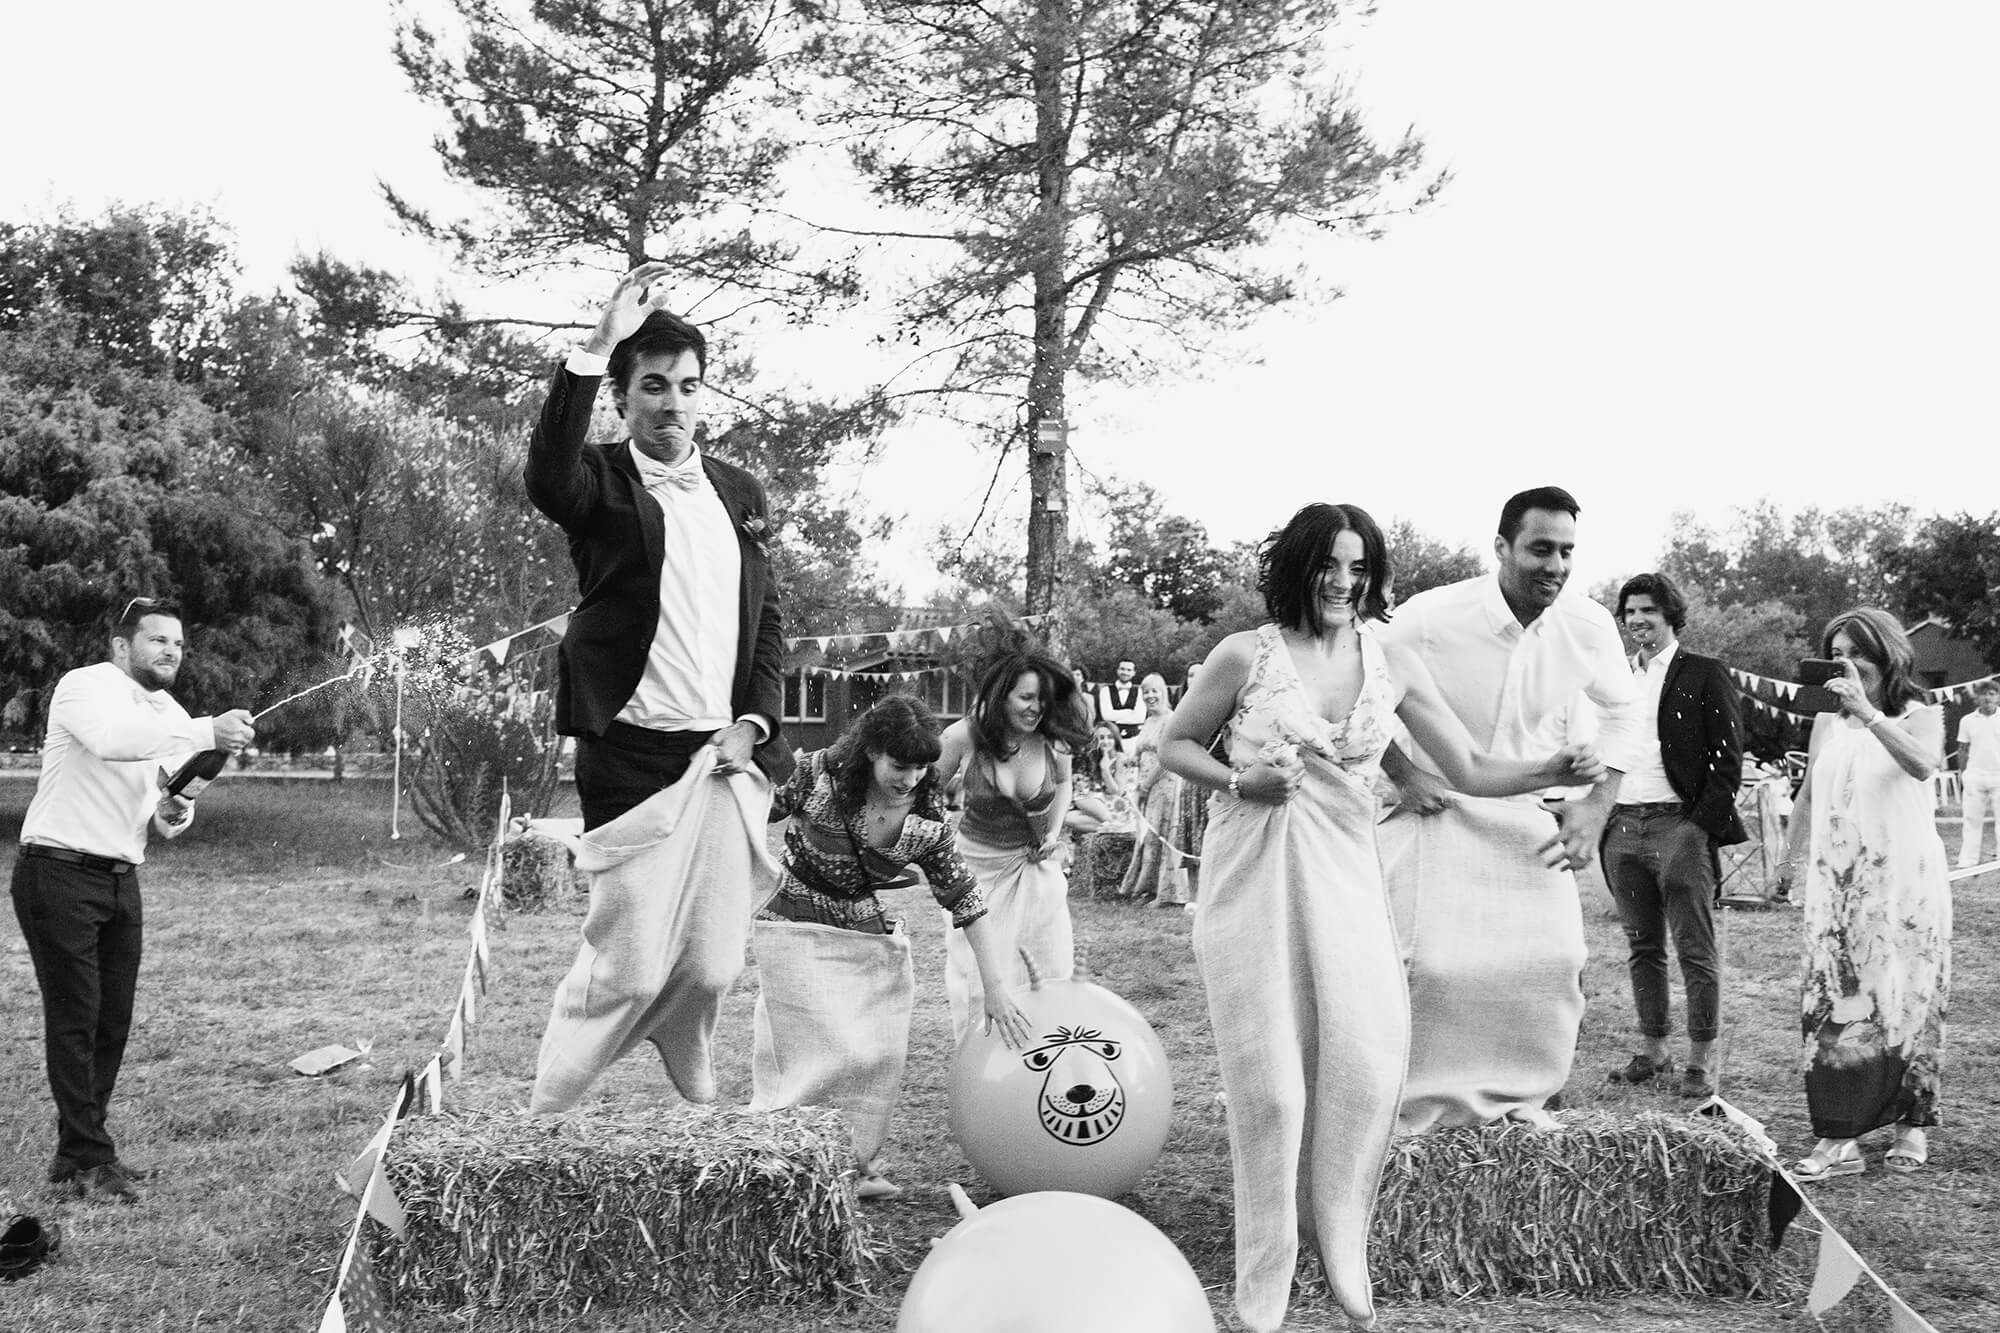 Party games at Domaine de Bruguieres wedding photography